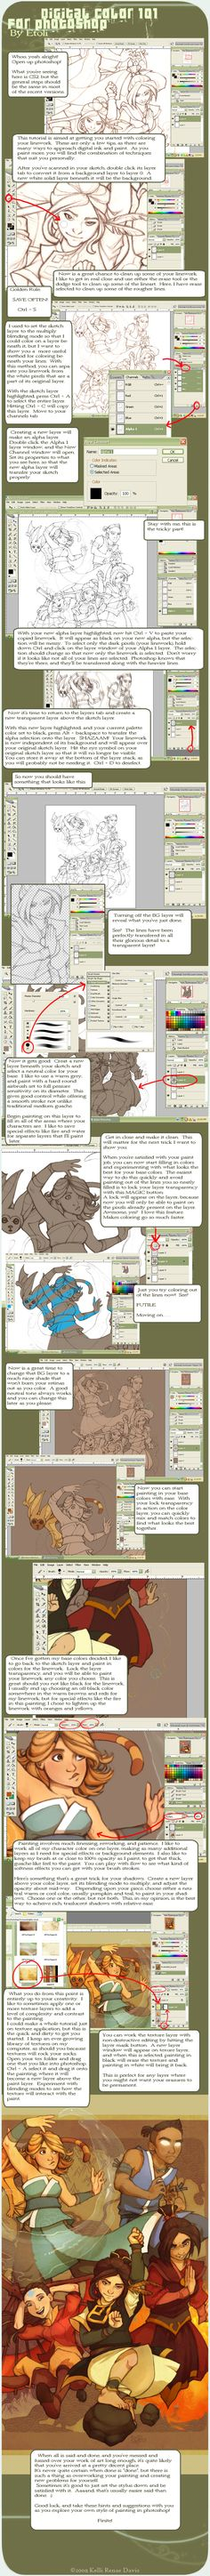 Tutorial: Digital Paint in Photoshop (PS) by ©Etoli, also features a great technique for transferring lineart from a solid background to transparent. Digital Painting Tutorials, Digital Art Tutorial, Painting Tips, Painting Process, Drawing Lessons, Drawing Techniques, Art Lessons, Ps Tutorials, Design Tutorials